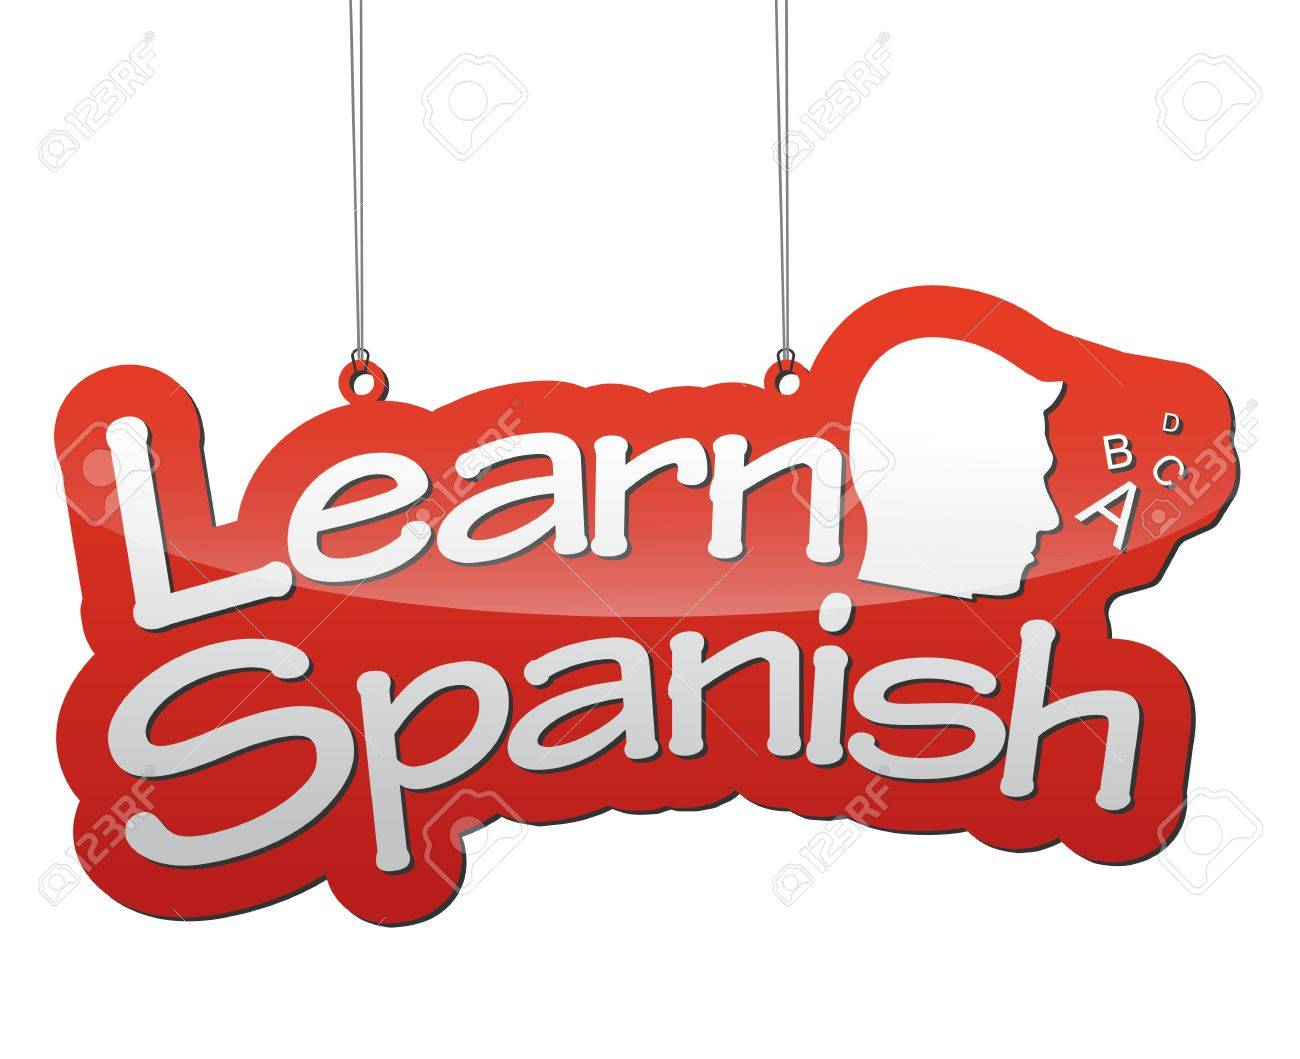 This is background learn spanish - 46319468